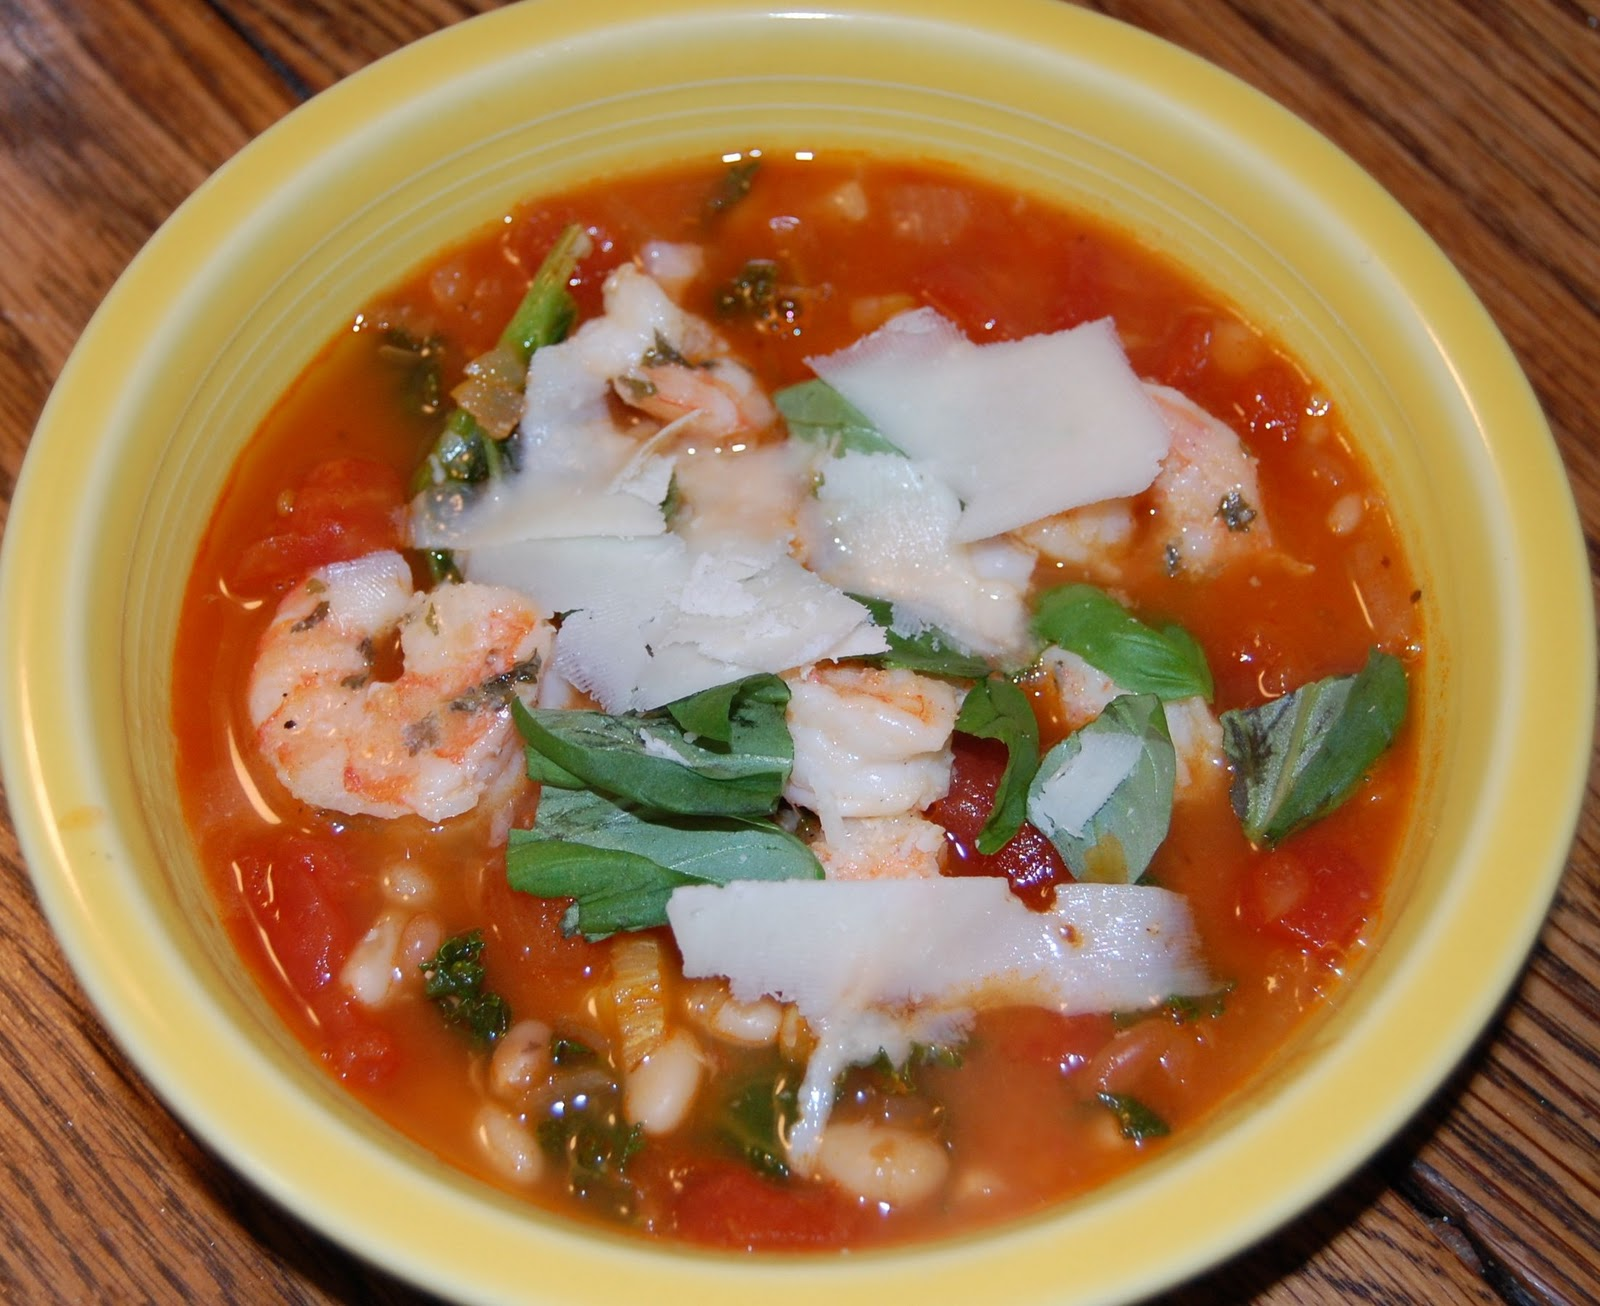 Tuscan Bean Soup with Shrimp, inspired by The Pioneer Woman.